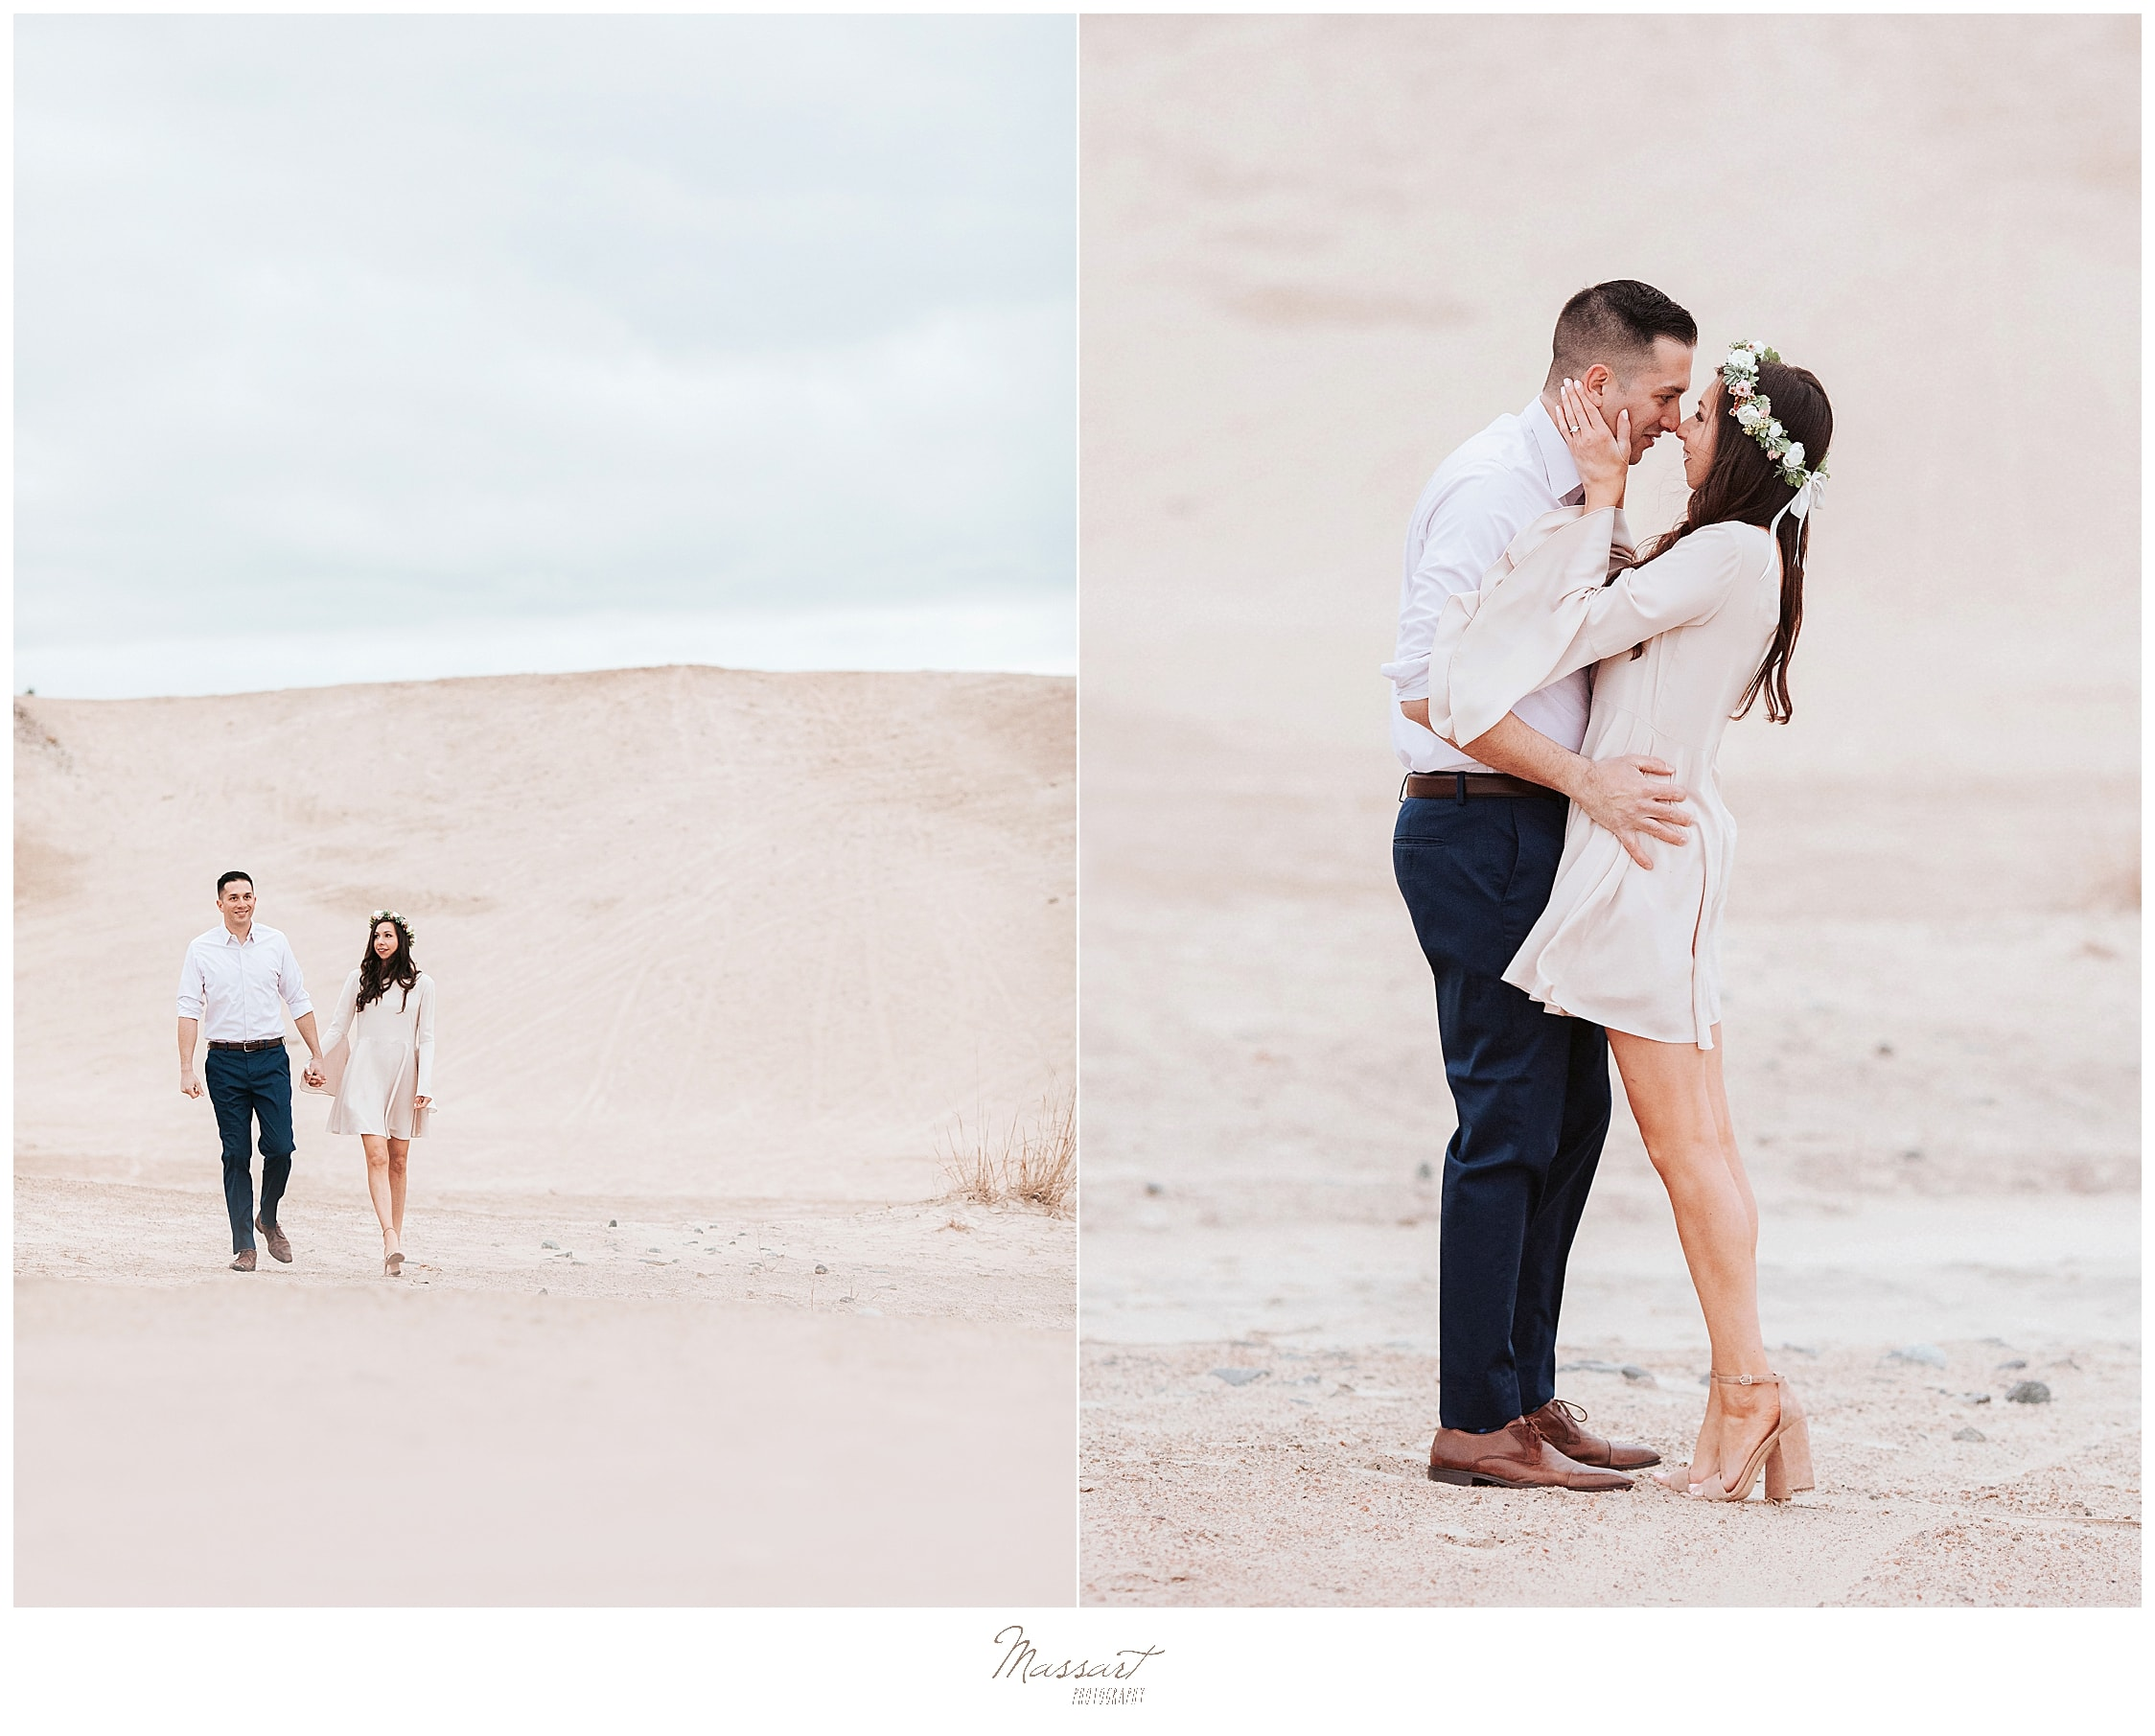 Whimsical engagement photos in RI by wedding photographers in RI, CT and MA